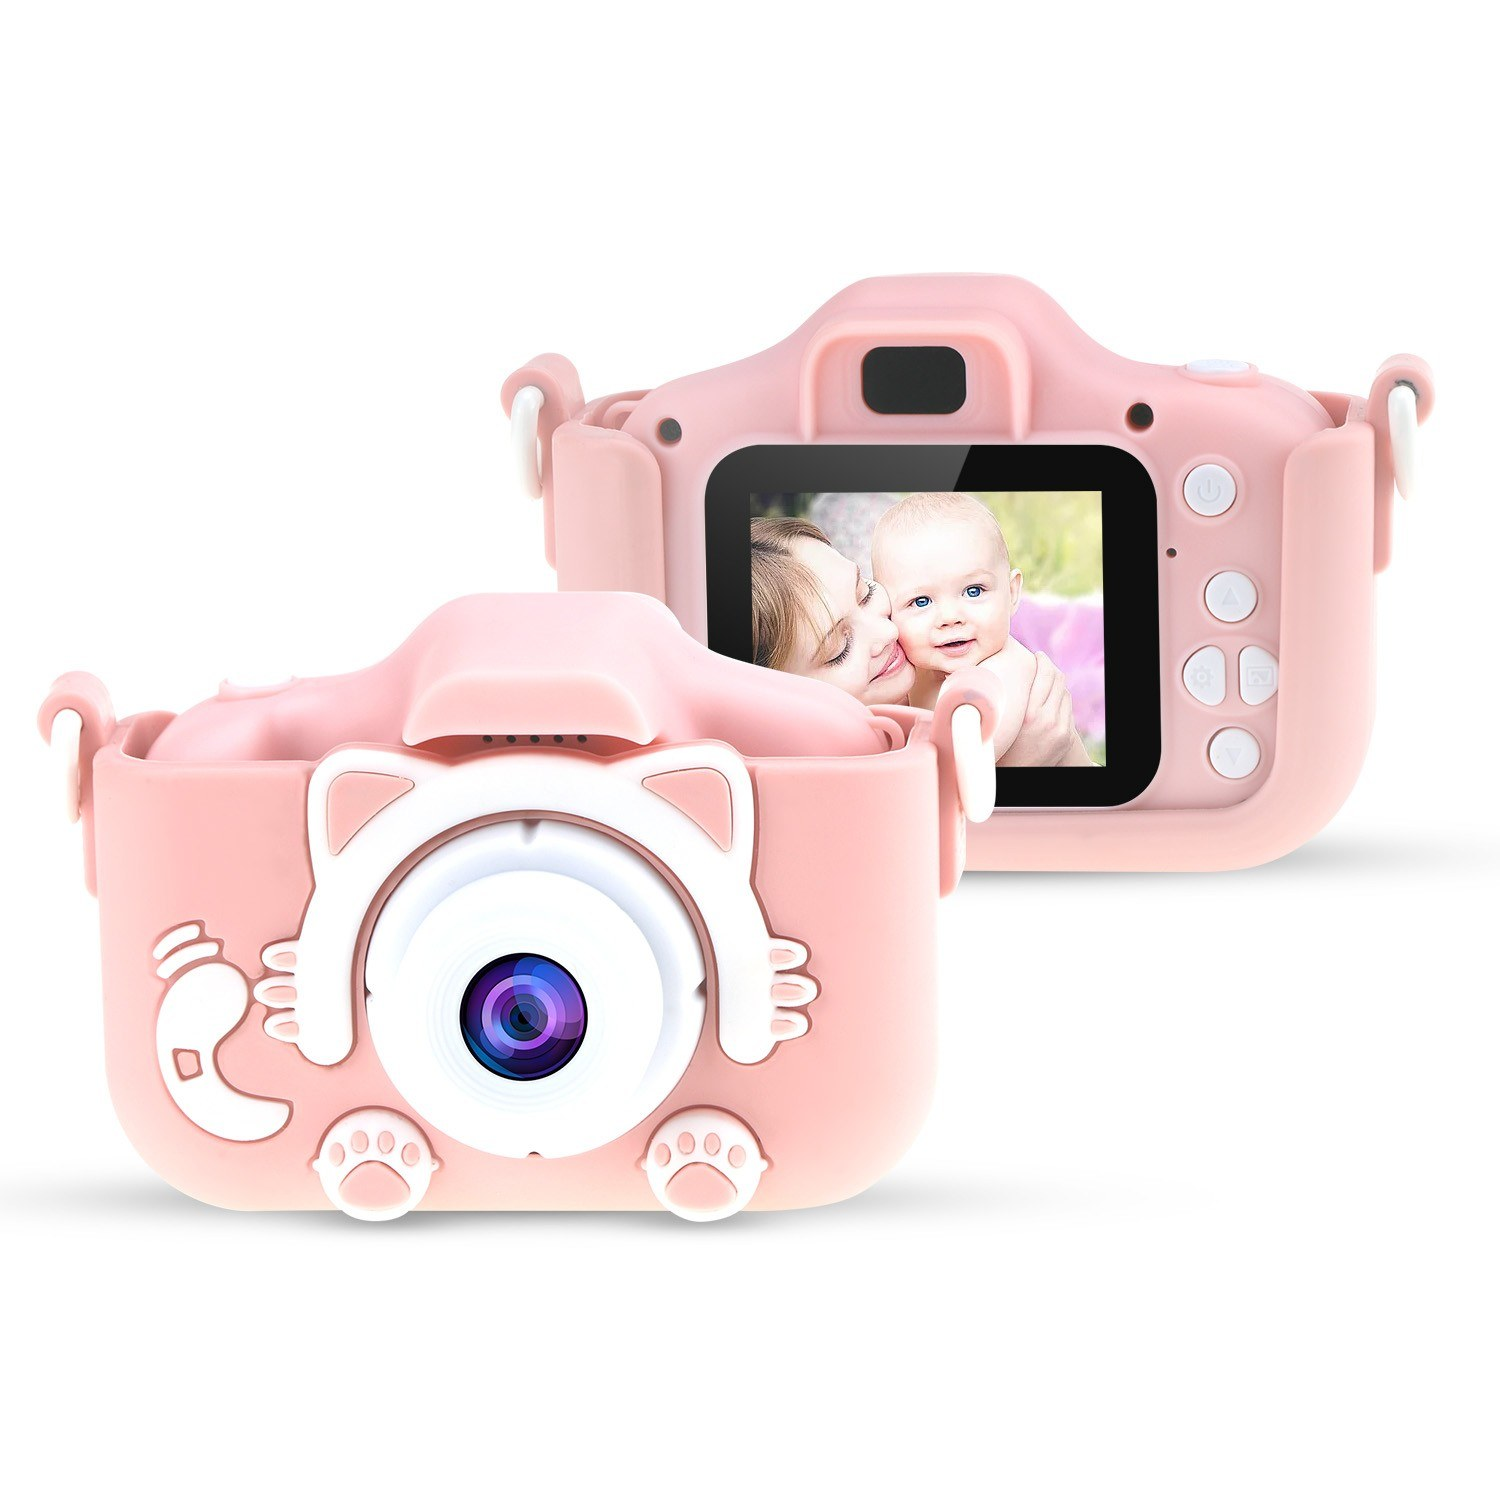 20MP 1080P HD Kids Children Digital Camera Mini Video Camcorder 2.0 Inch IPS Color Screen with Front & Rear Dual Cameras Games Mode 32GB Memory Card